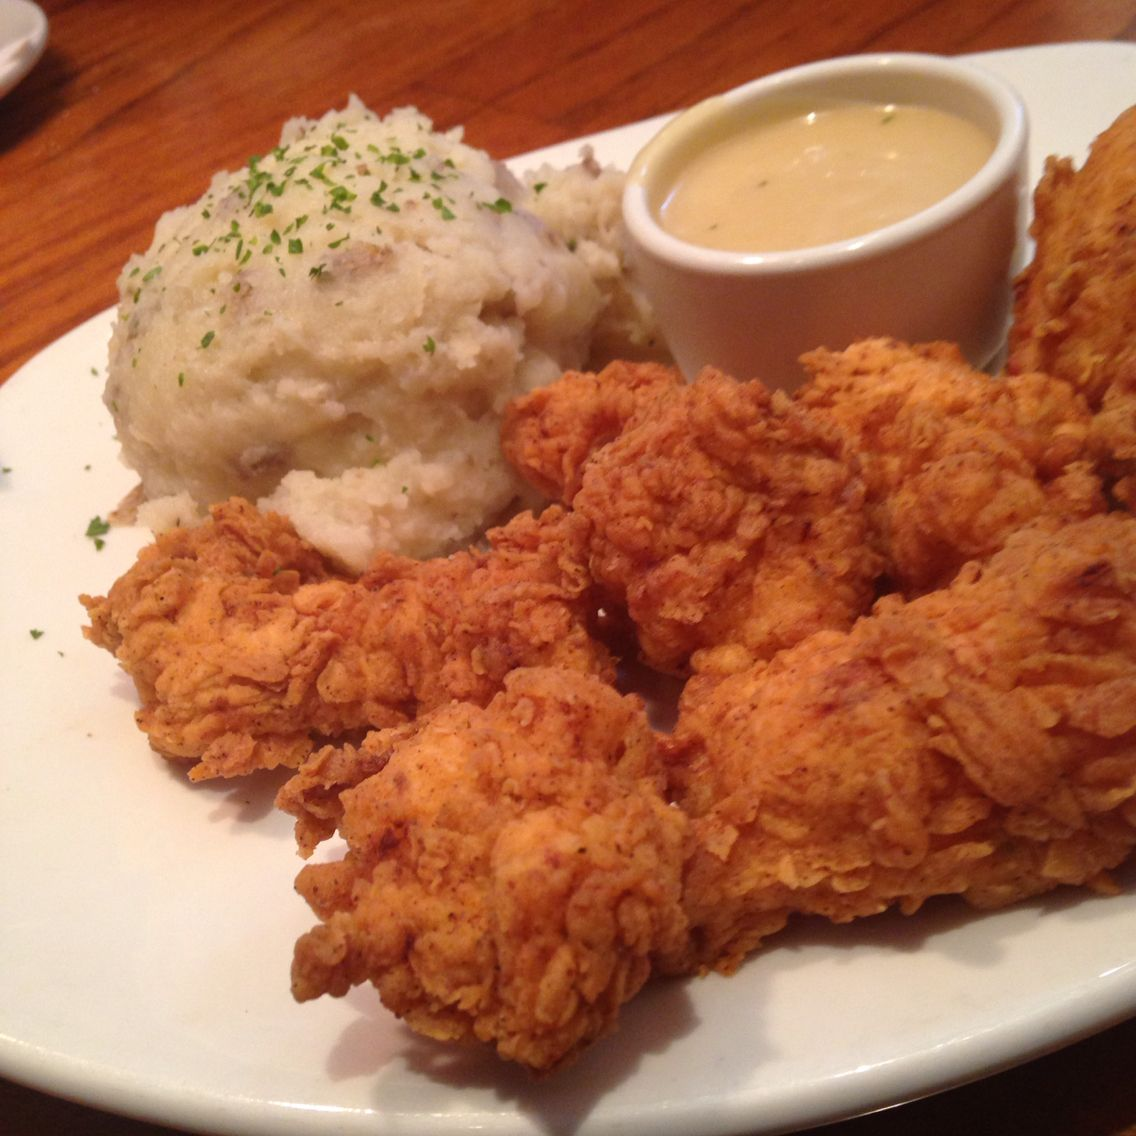 Outback Steakhouse Hand Breaded Chicken Tenders With Garlic Mashed Potatoes Chicken Recipes Recipes Chicken Tender Recipes